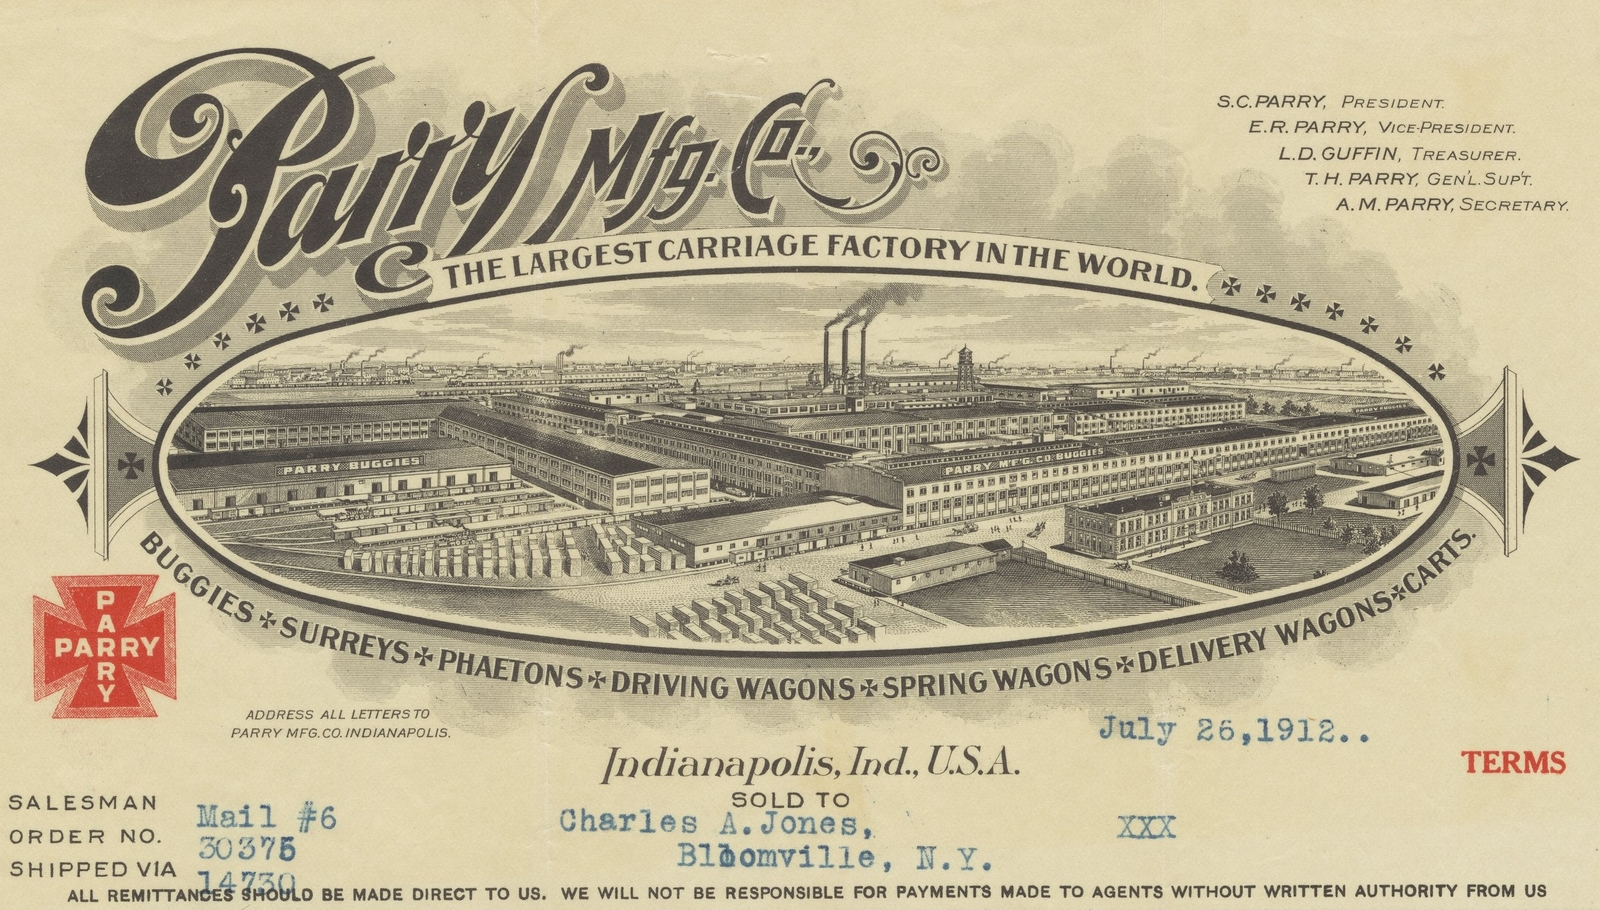 Parry Mfg. Co. (Carriages) Indianapolis, Indiana 1912 ac